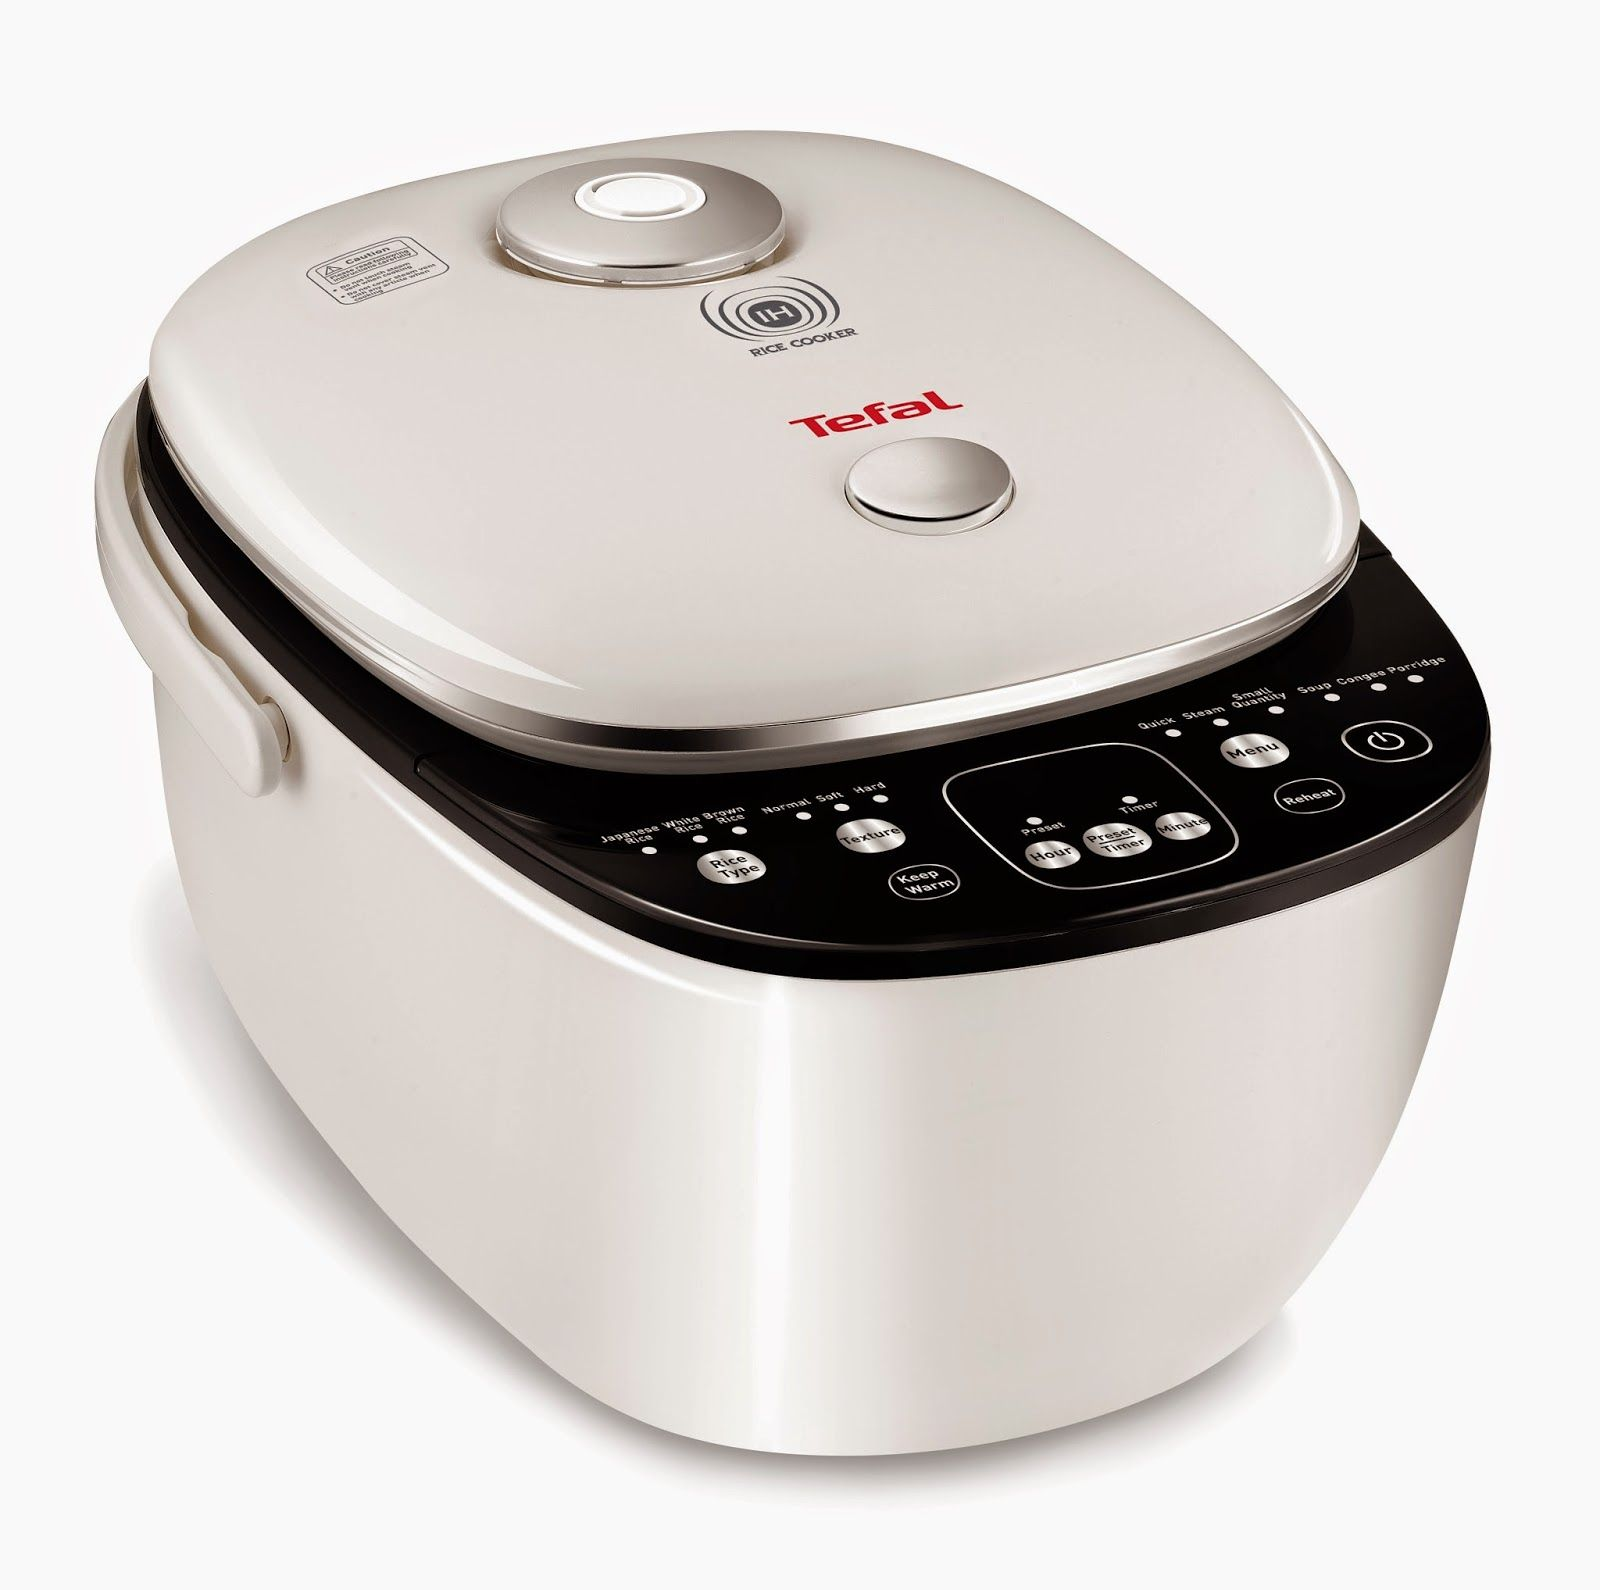 Industrial Kitchen Equipment Malaysia: Rice Cooker, Cooker, Home Appliances